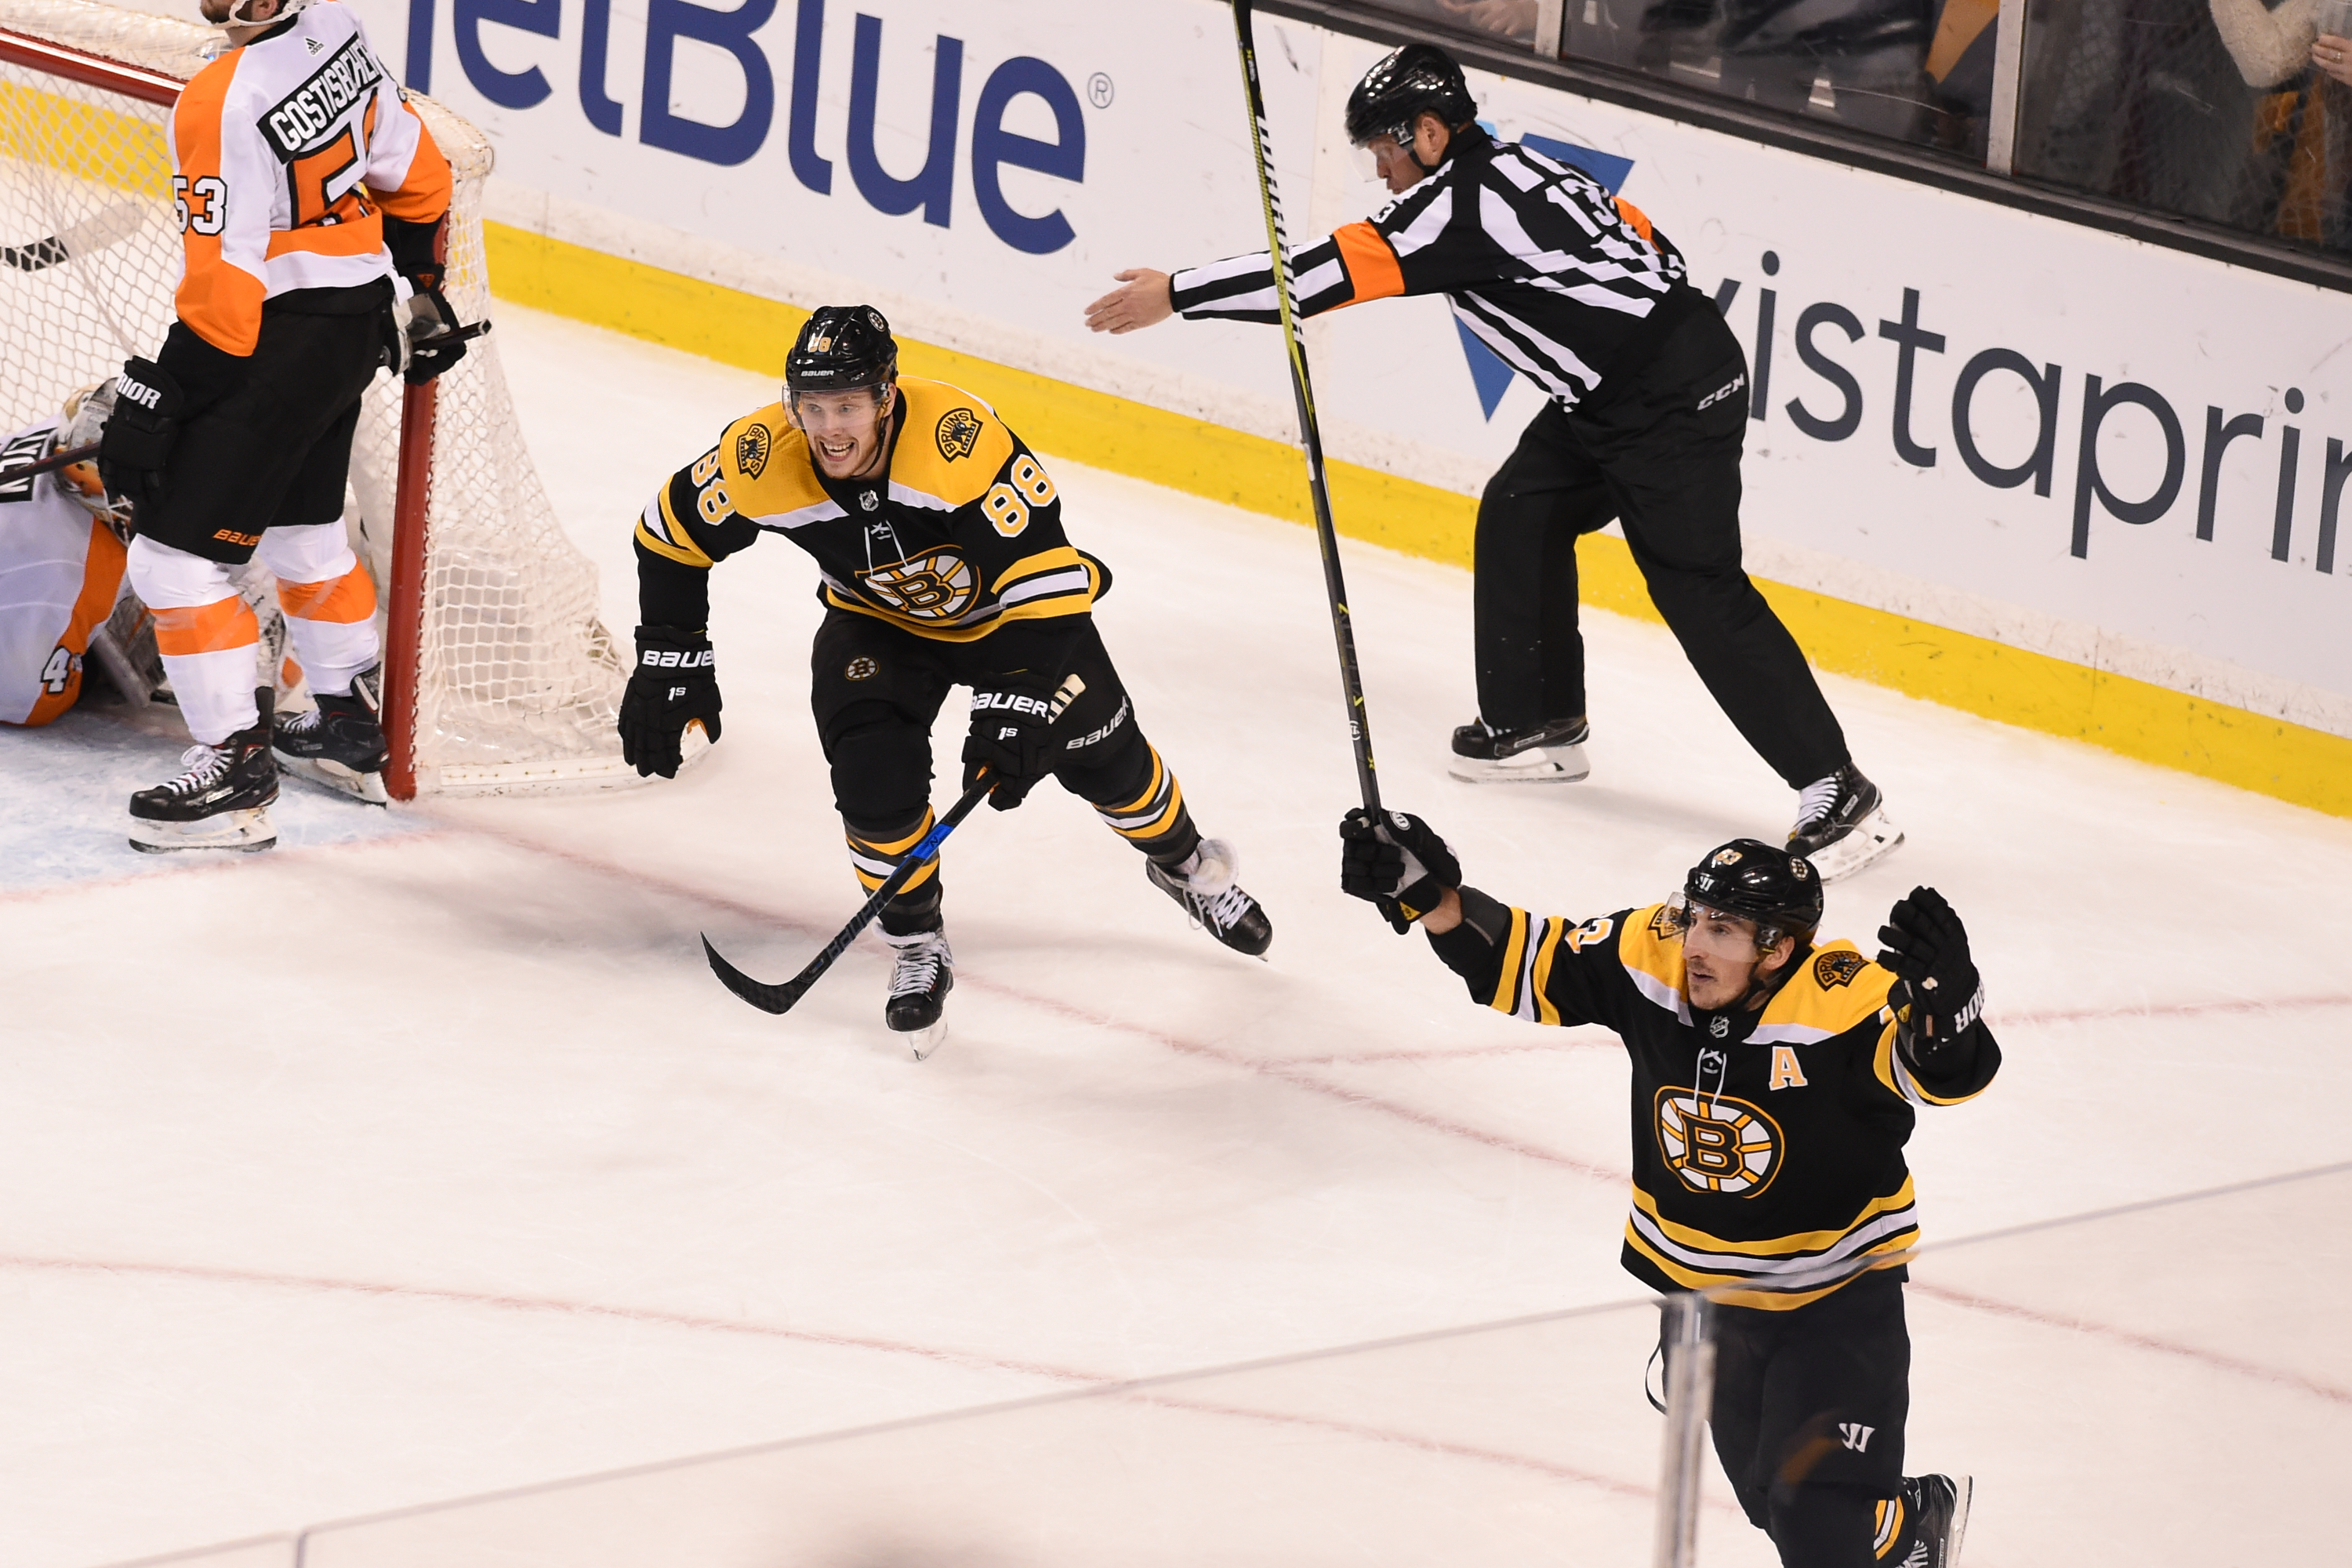 Bruins' six-game win streak snapped in 3-1 loss at Chicago